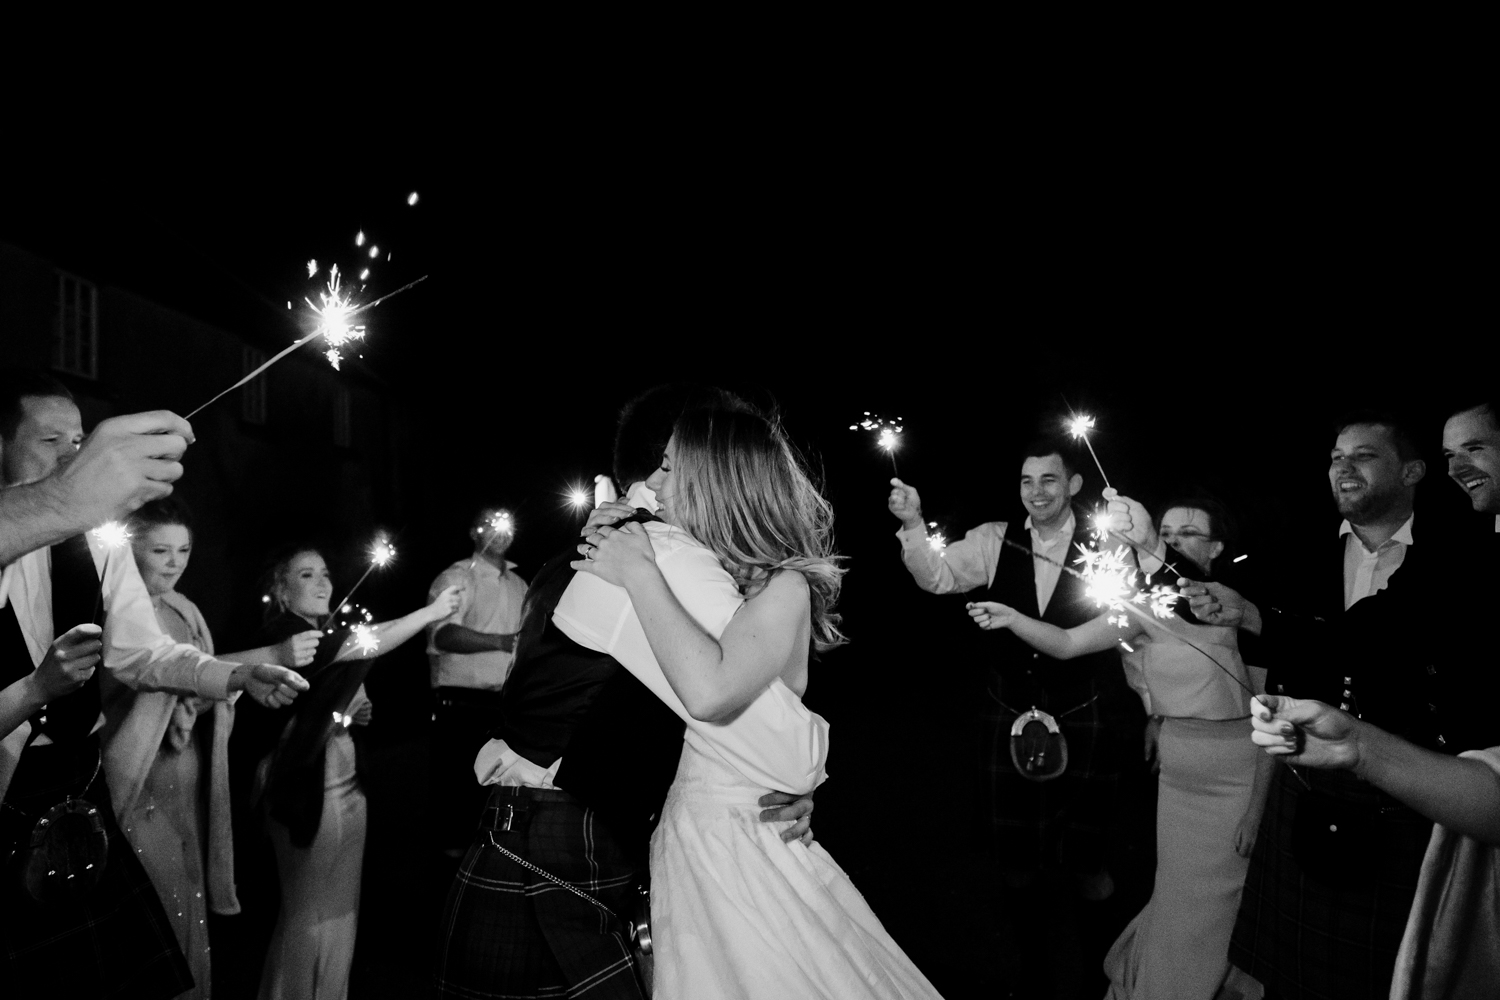 Bride + groom embrace surrounded by the bridal party who hold out sparklers.